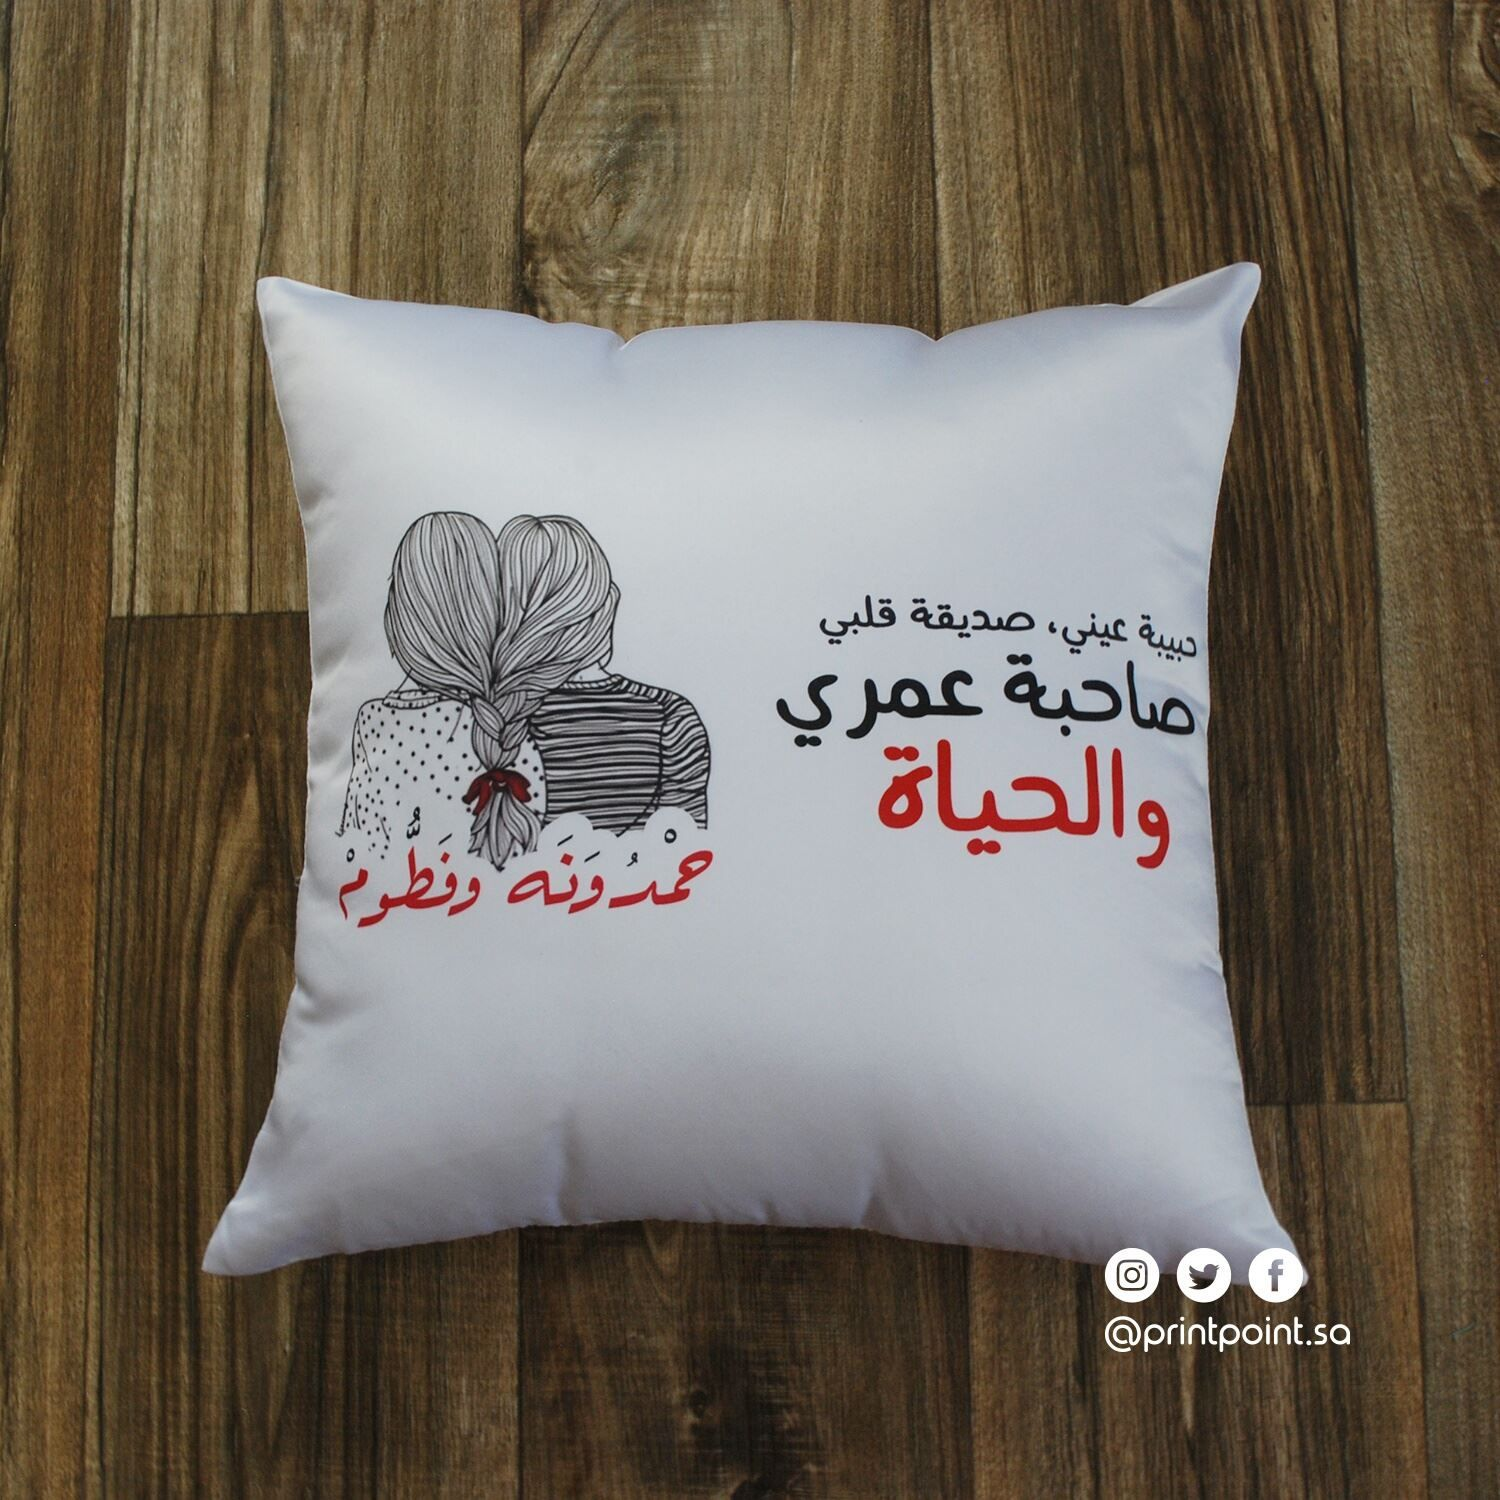 Pin By صباح سلامة On صور طباعة Gift Blog Gifts Throw Pillows